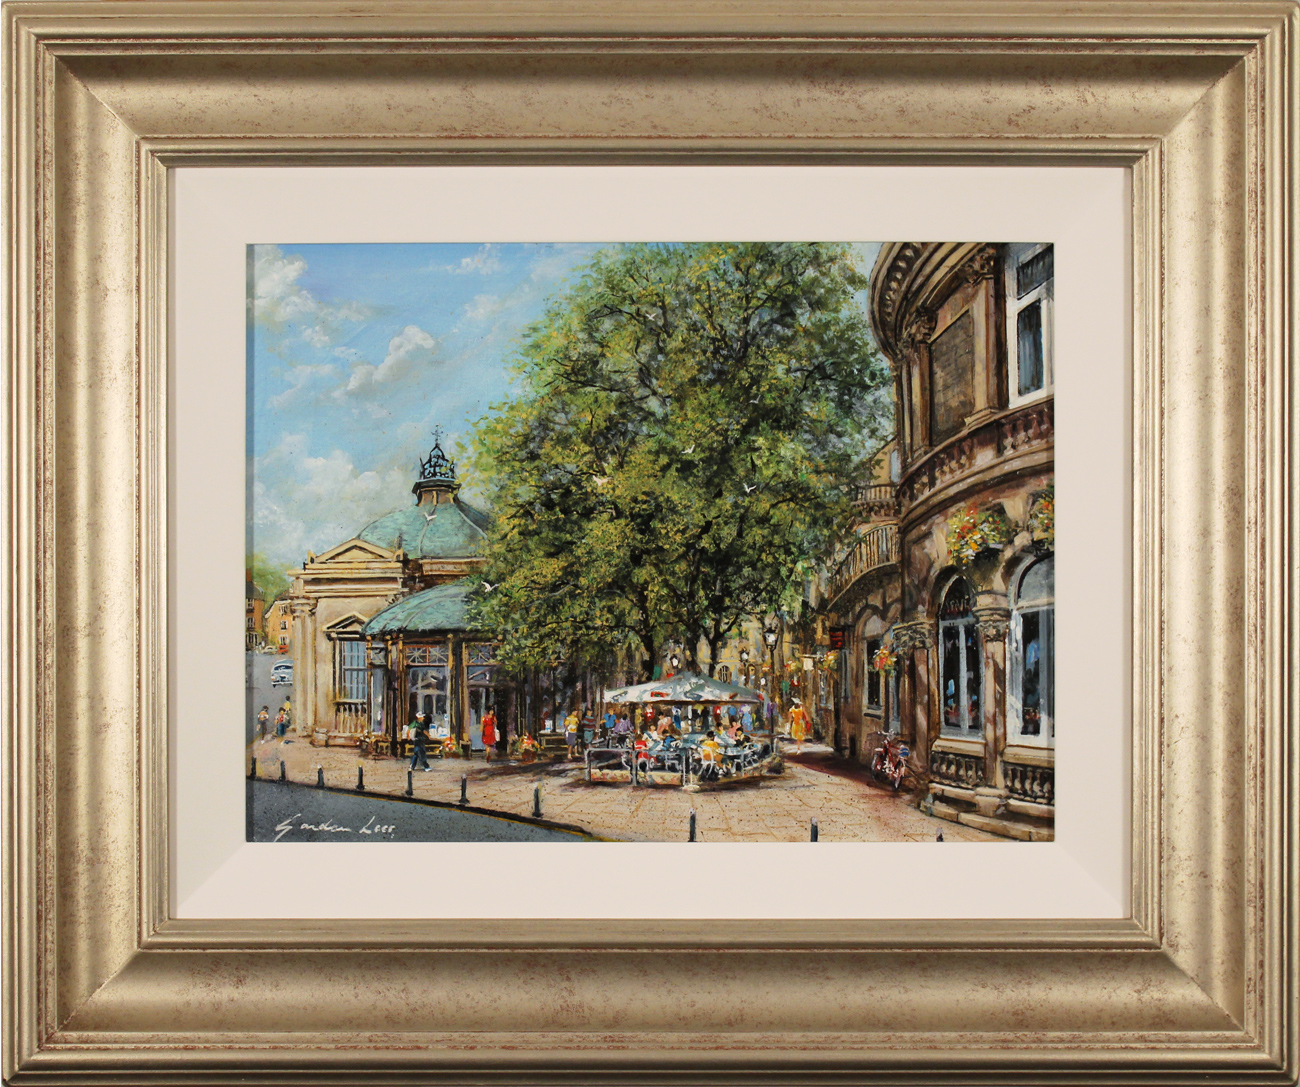 Gordon Lees, Original oil painting on panel, Café Days, Harrogate, click to enlarge